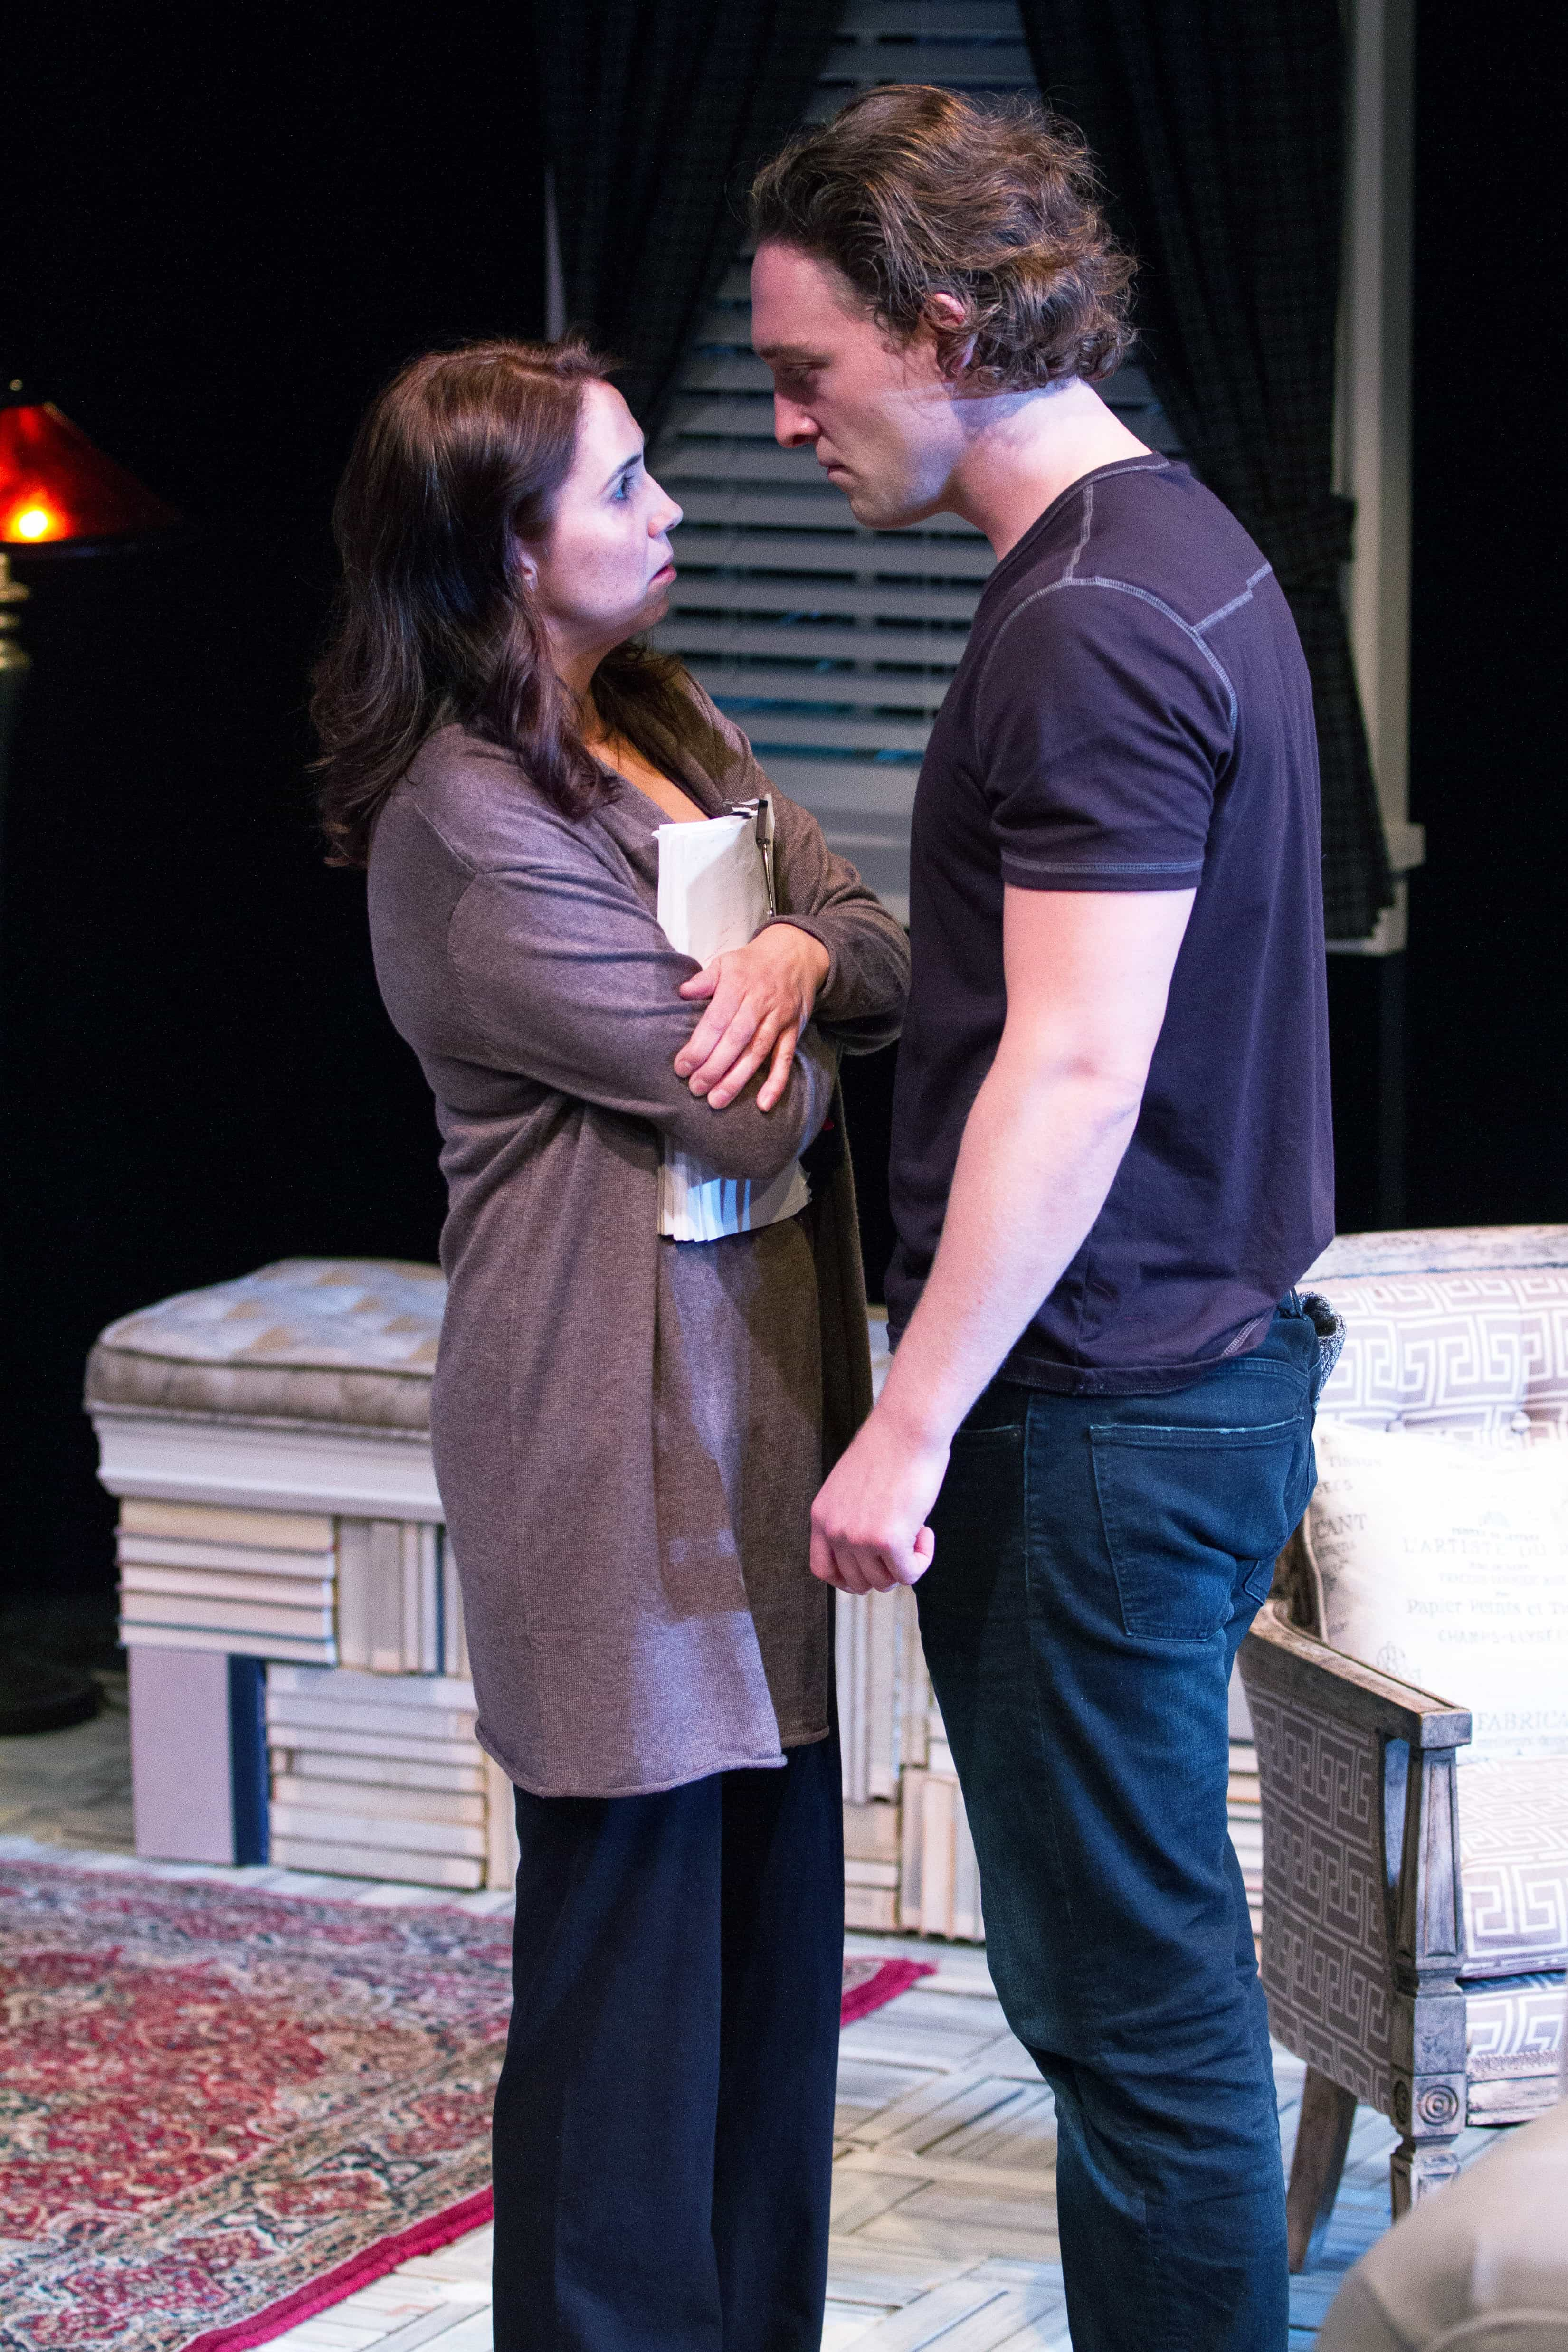 Holly Twyford (Olivia) and Luigi Sottile (Ethan). Photo by Theresa Wood.